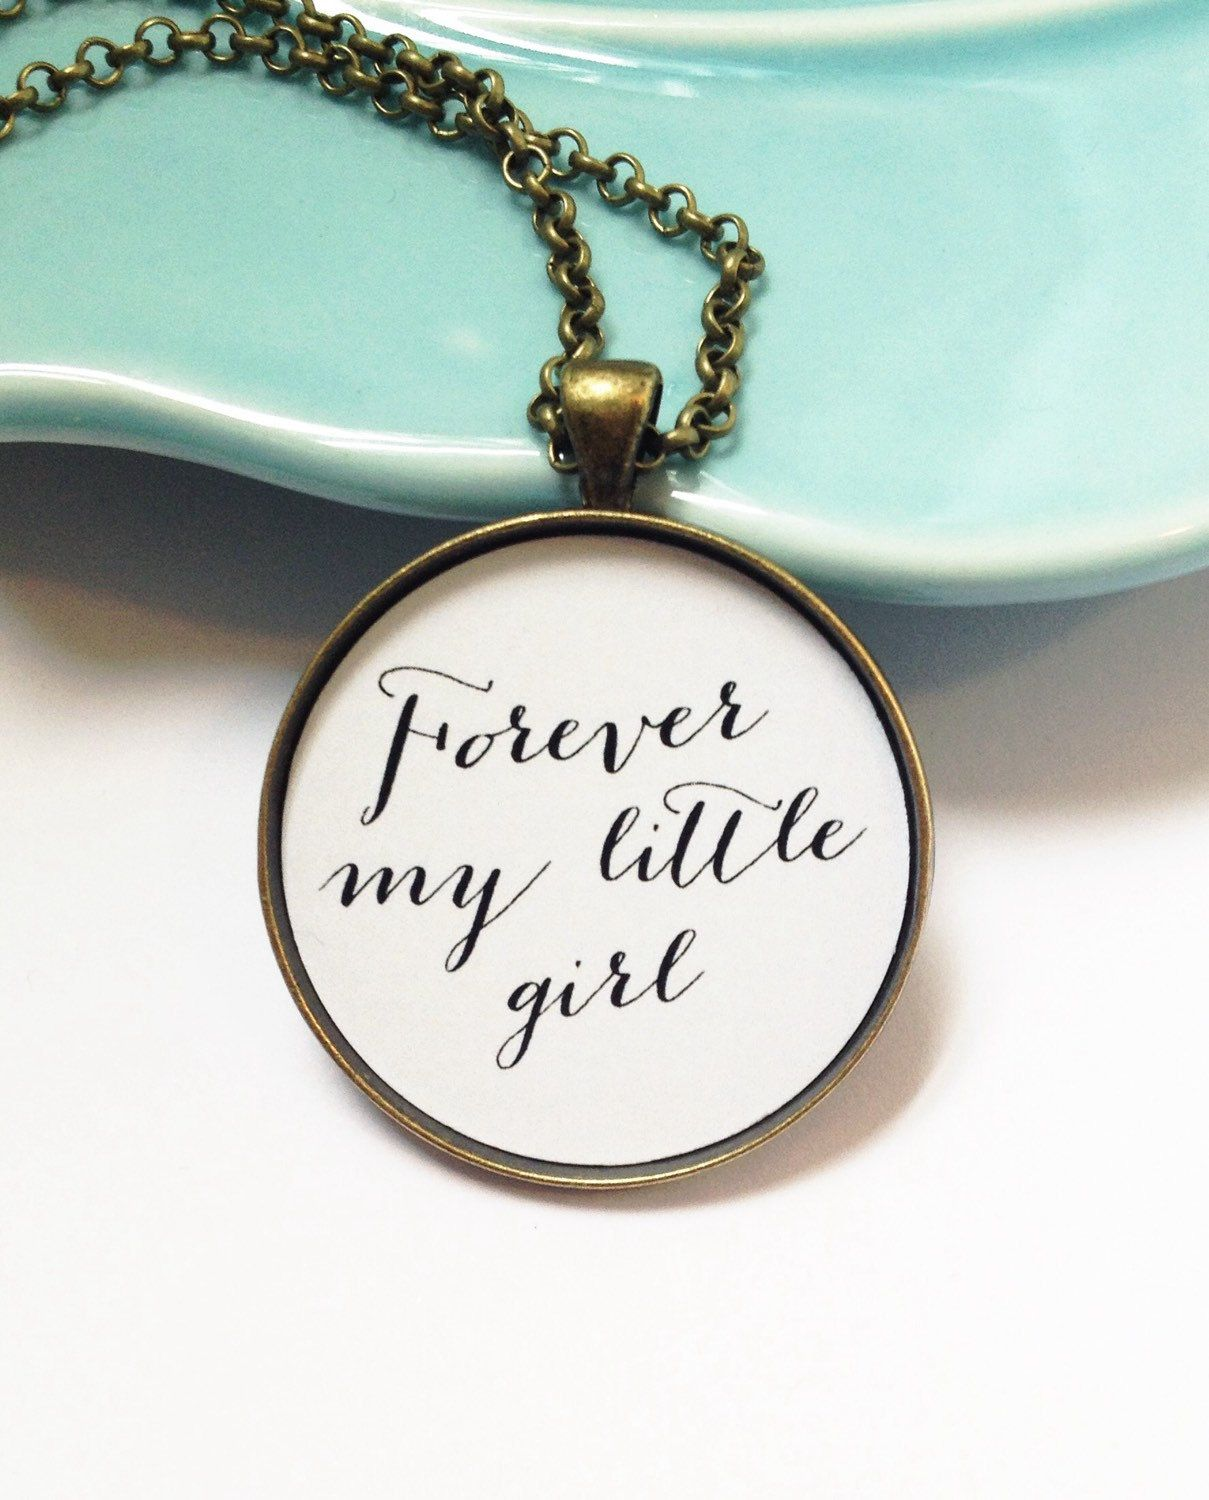 pin by tracy goodman on alyssa's graduation gift ideas | pinterest